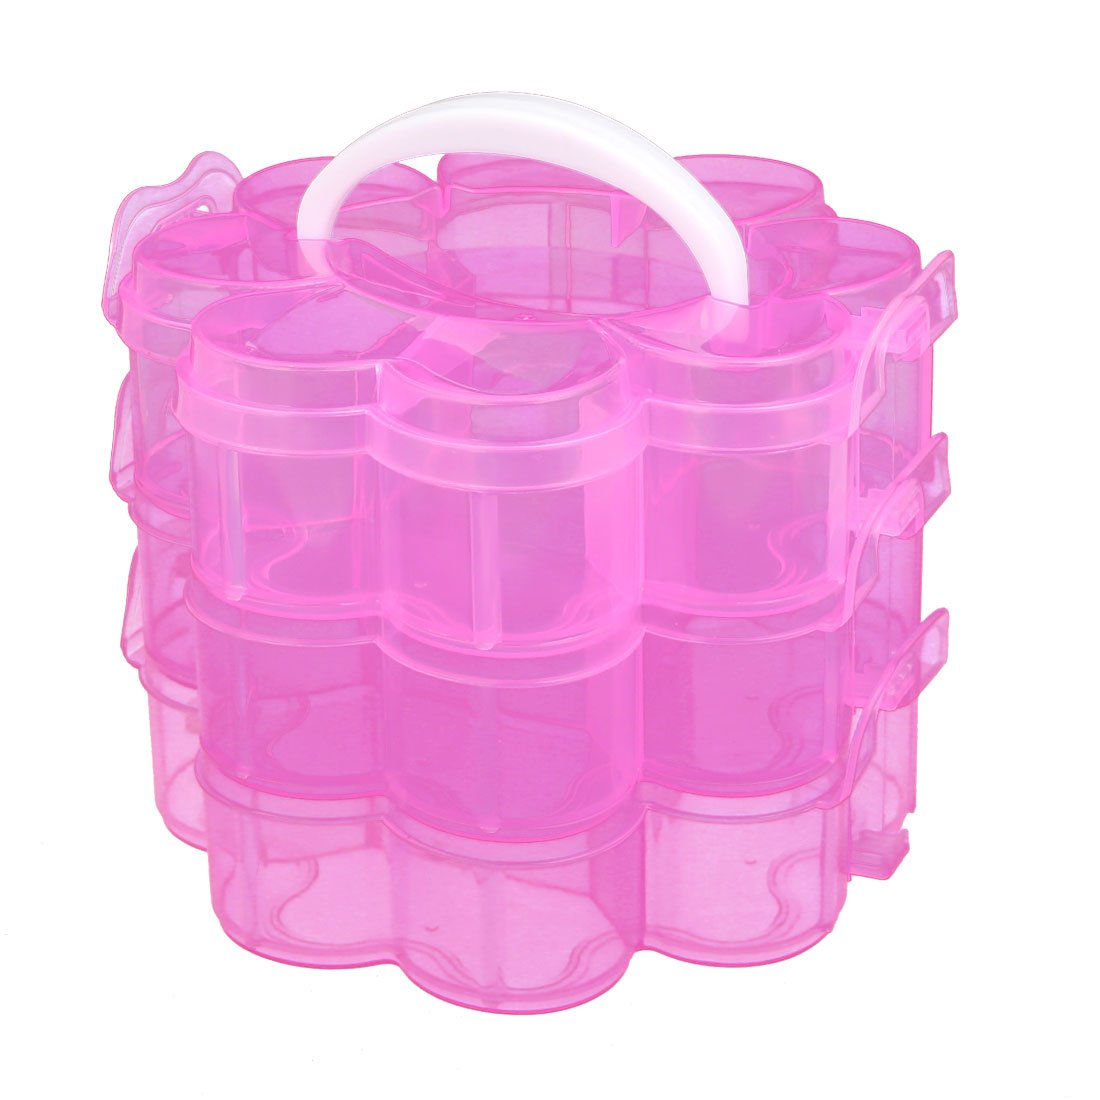 uxcell Jewelry 3-Layers Plum Blossom Shaped Container Storage Case Clear Pink